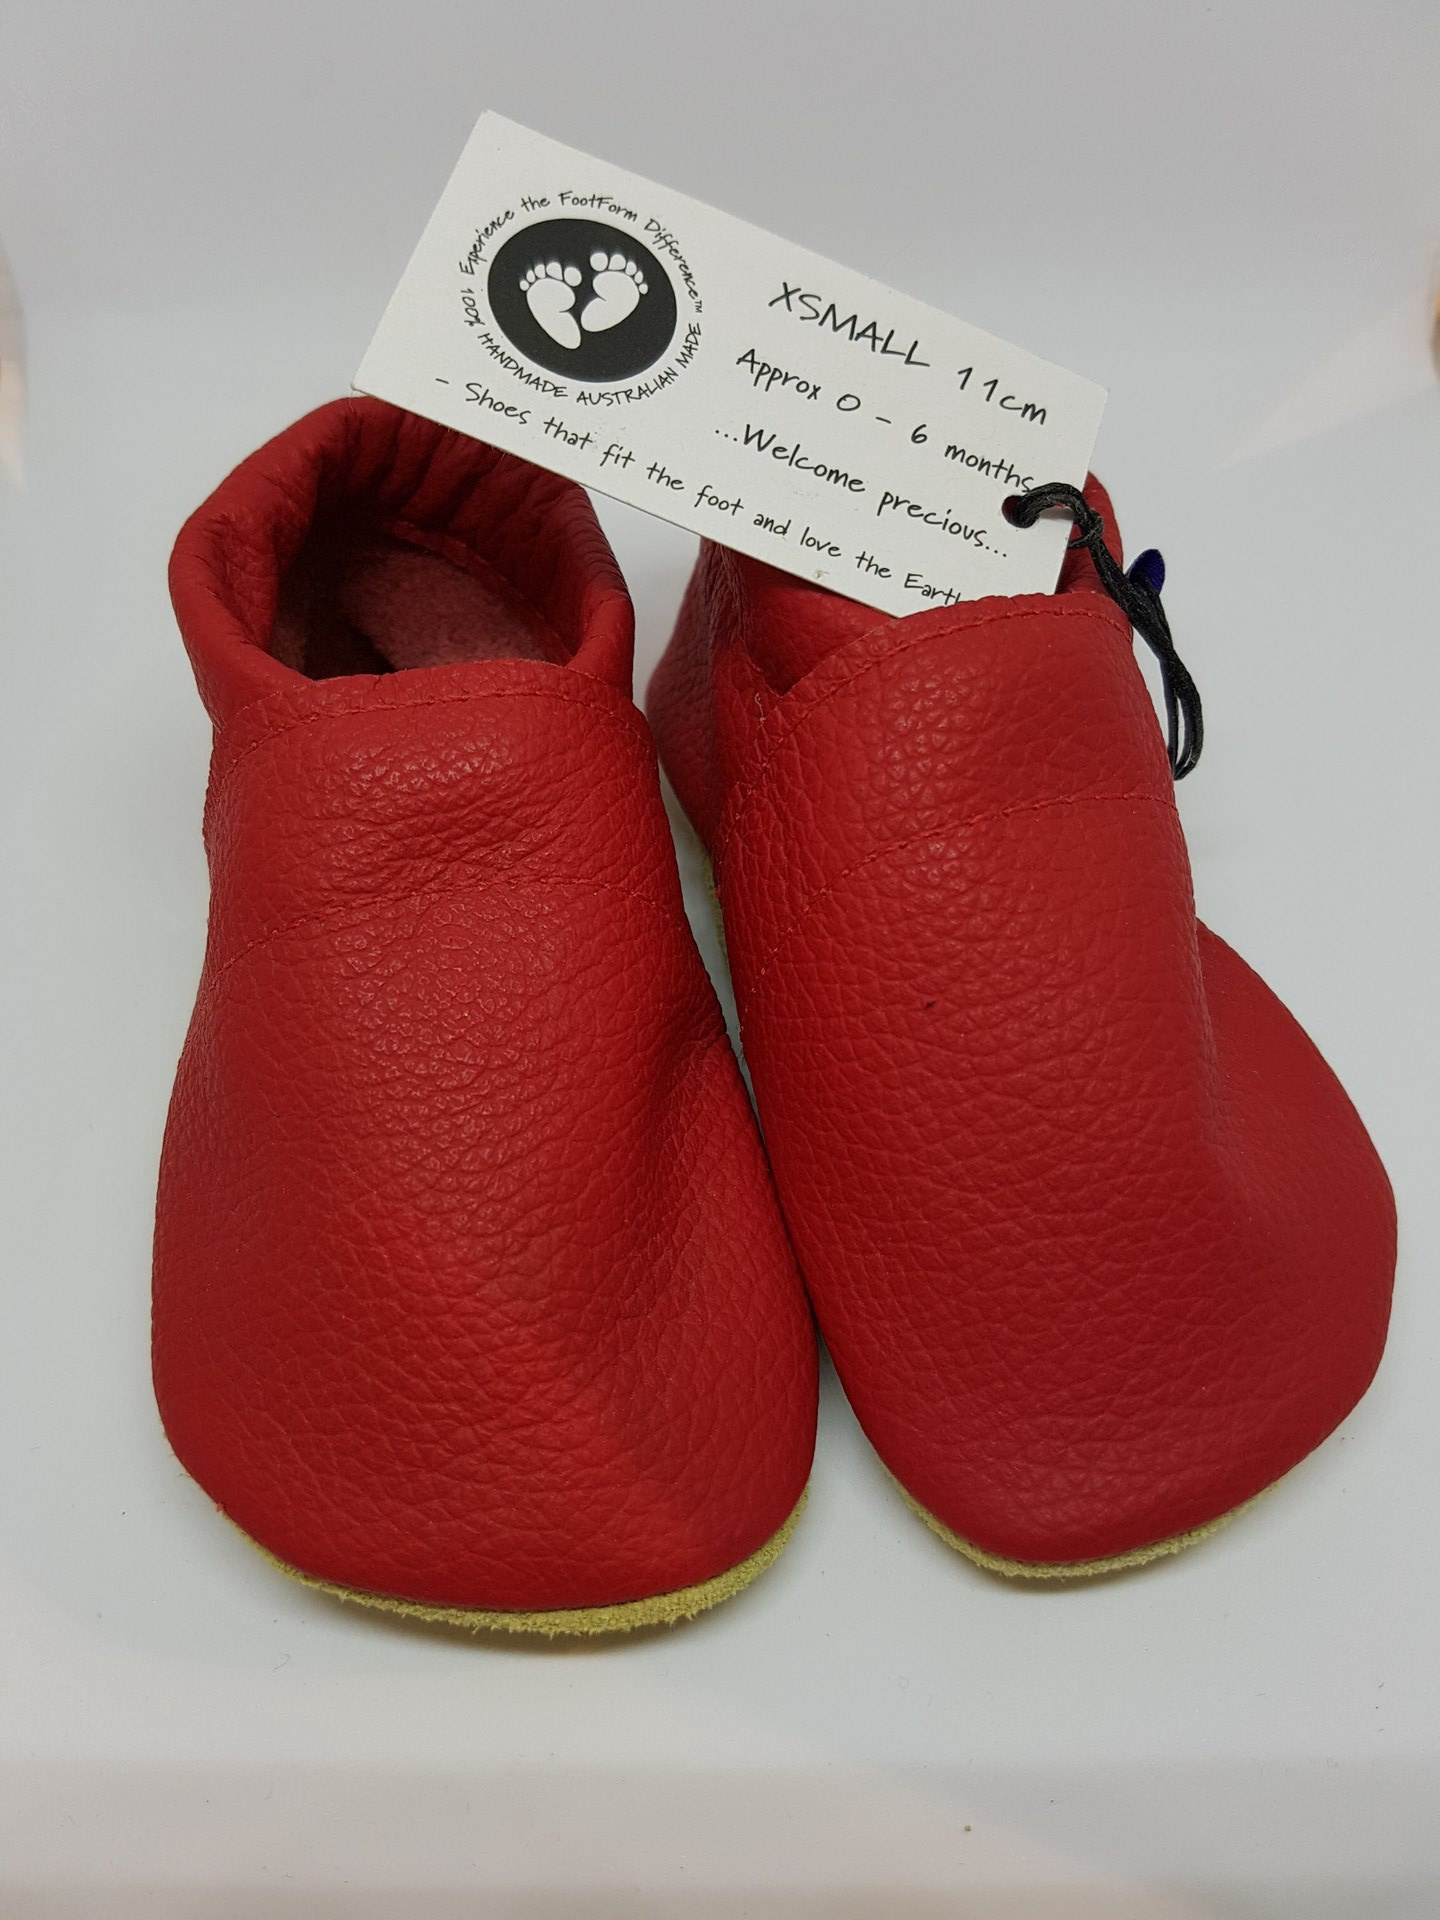 Bright Red Leather Baby Moccasins - fit approx 0-6 months